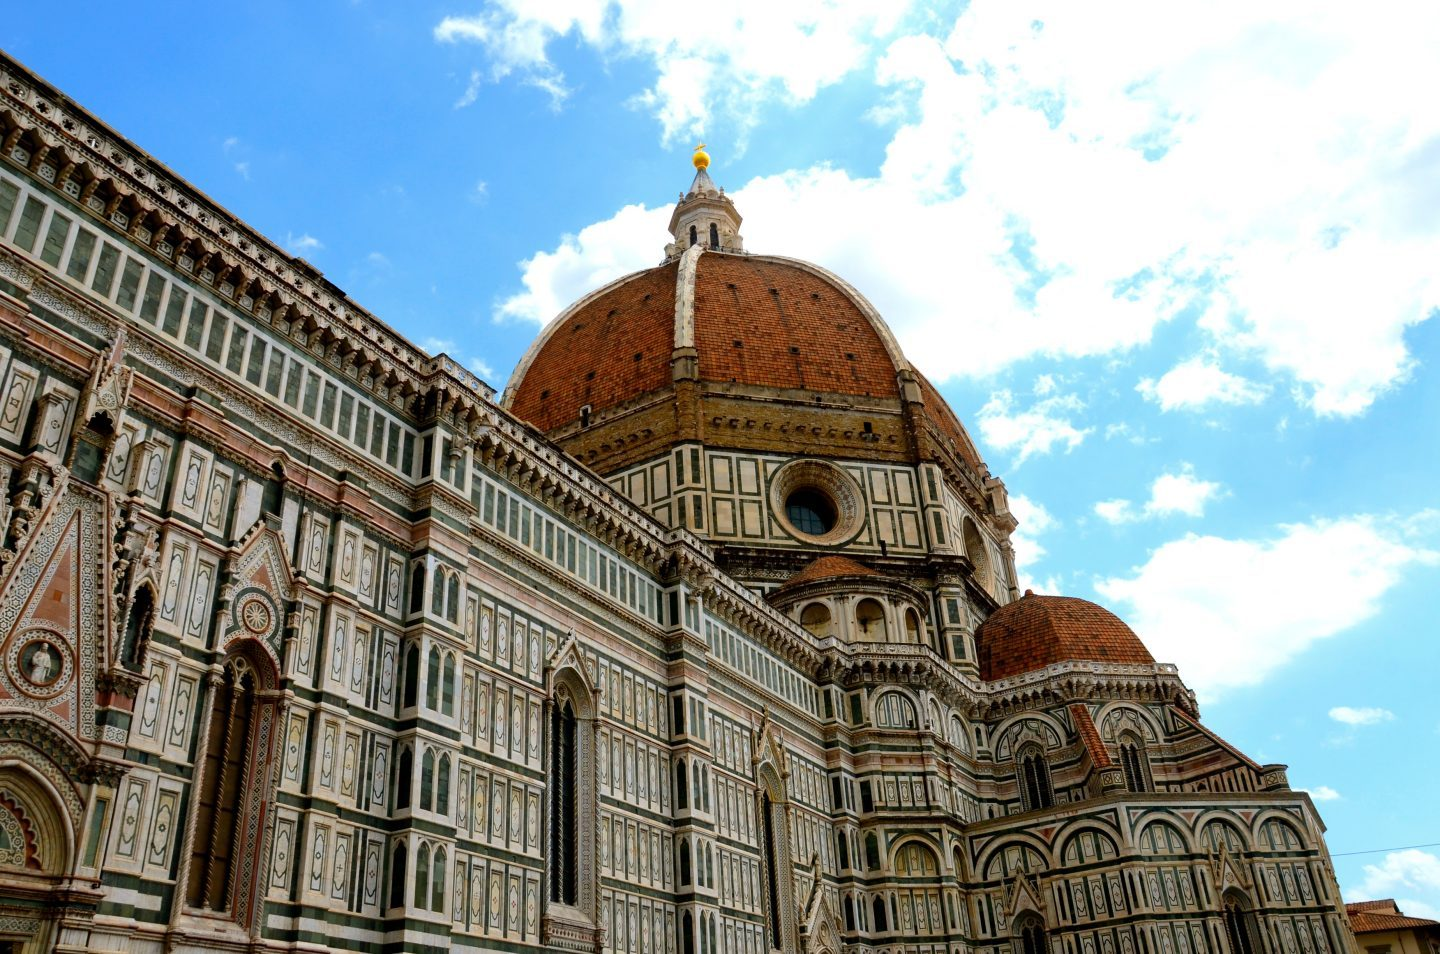 Looking up at the dome of the duomo in Florence.